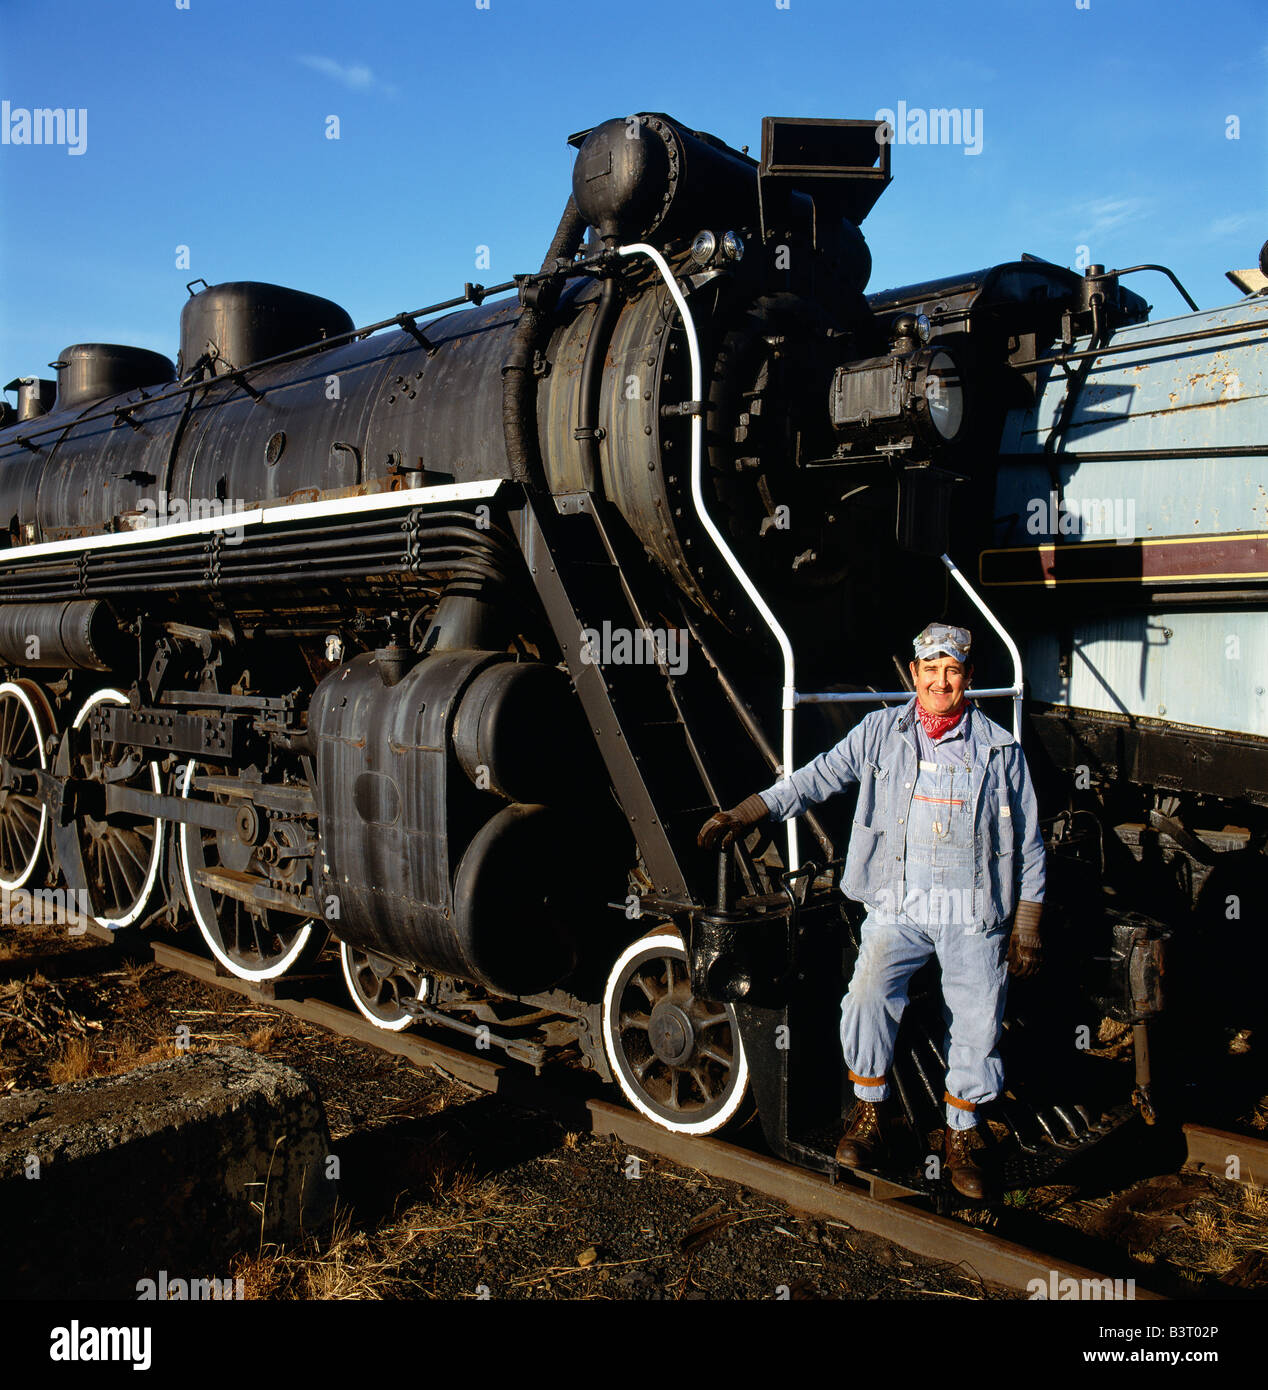 Engineer poses with old locomotive, Steamtown National Historic Site - Stock Image